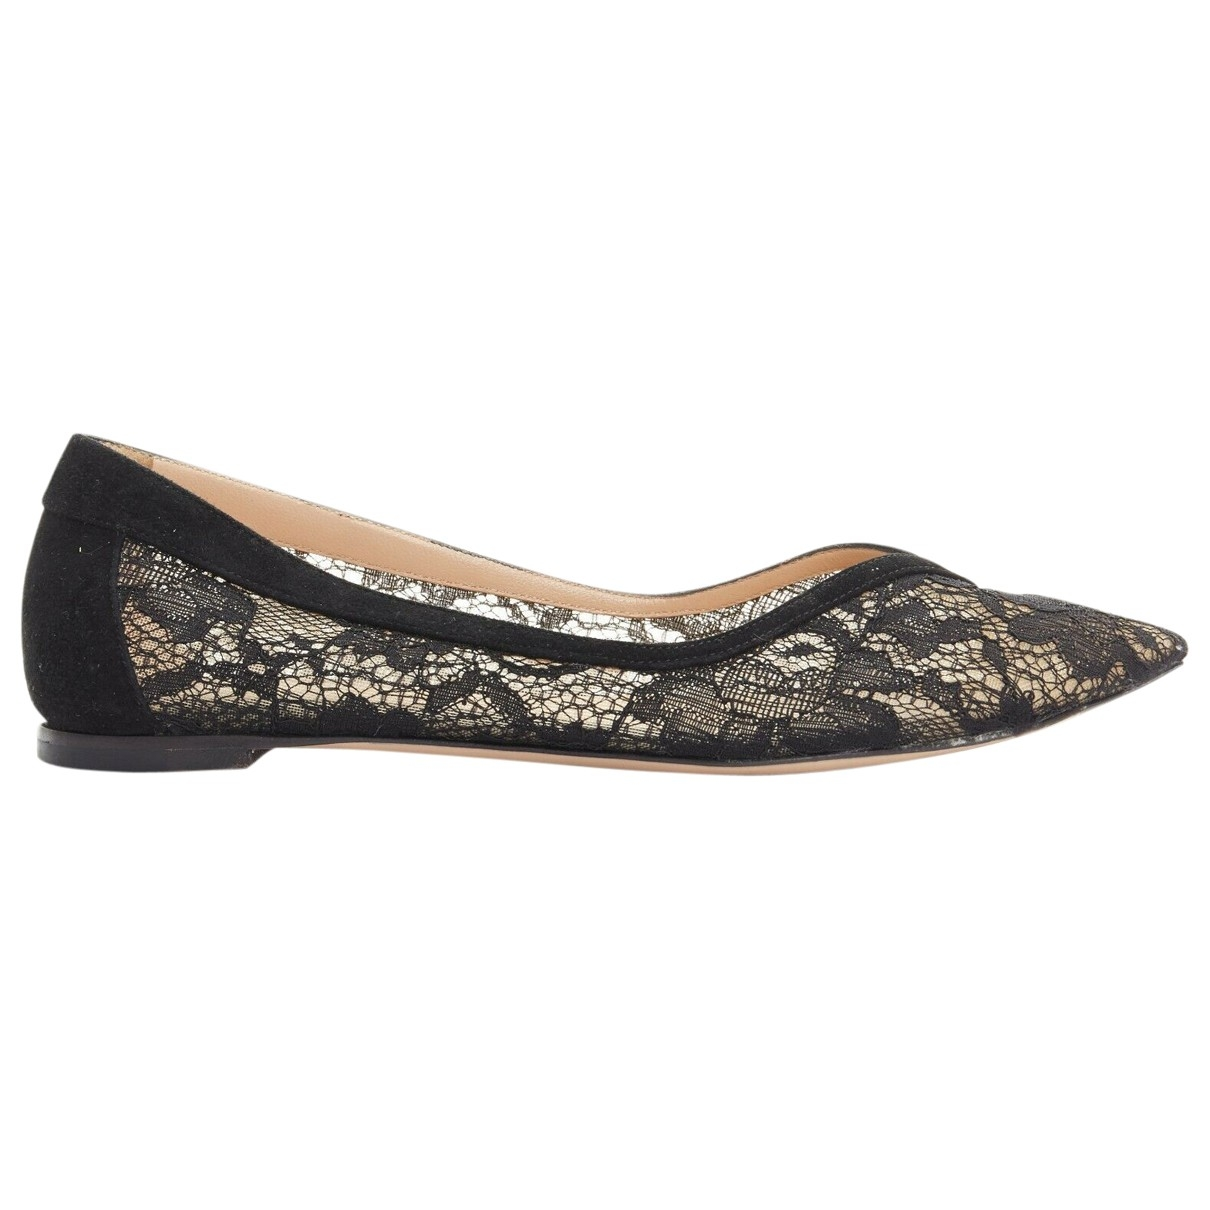 Gianvito Rossi \N Black Suede Ballet flats for Women 36.5 EU